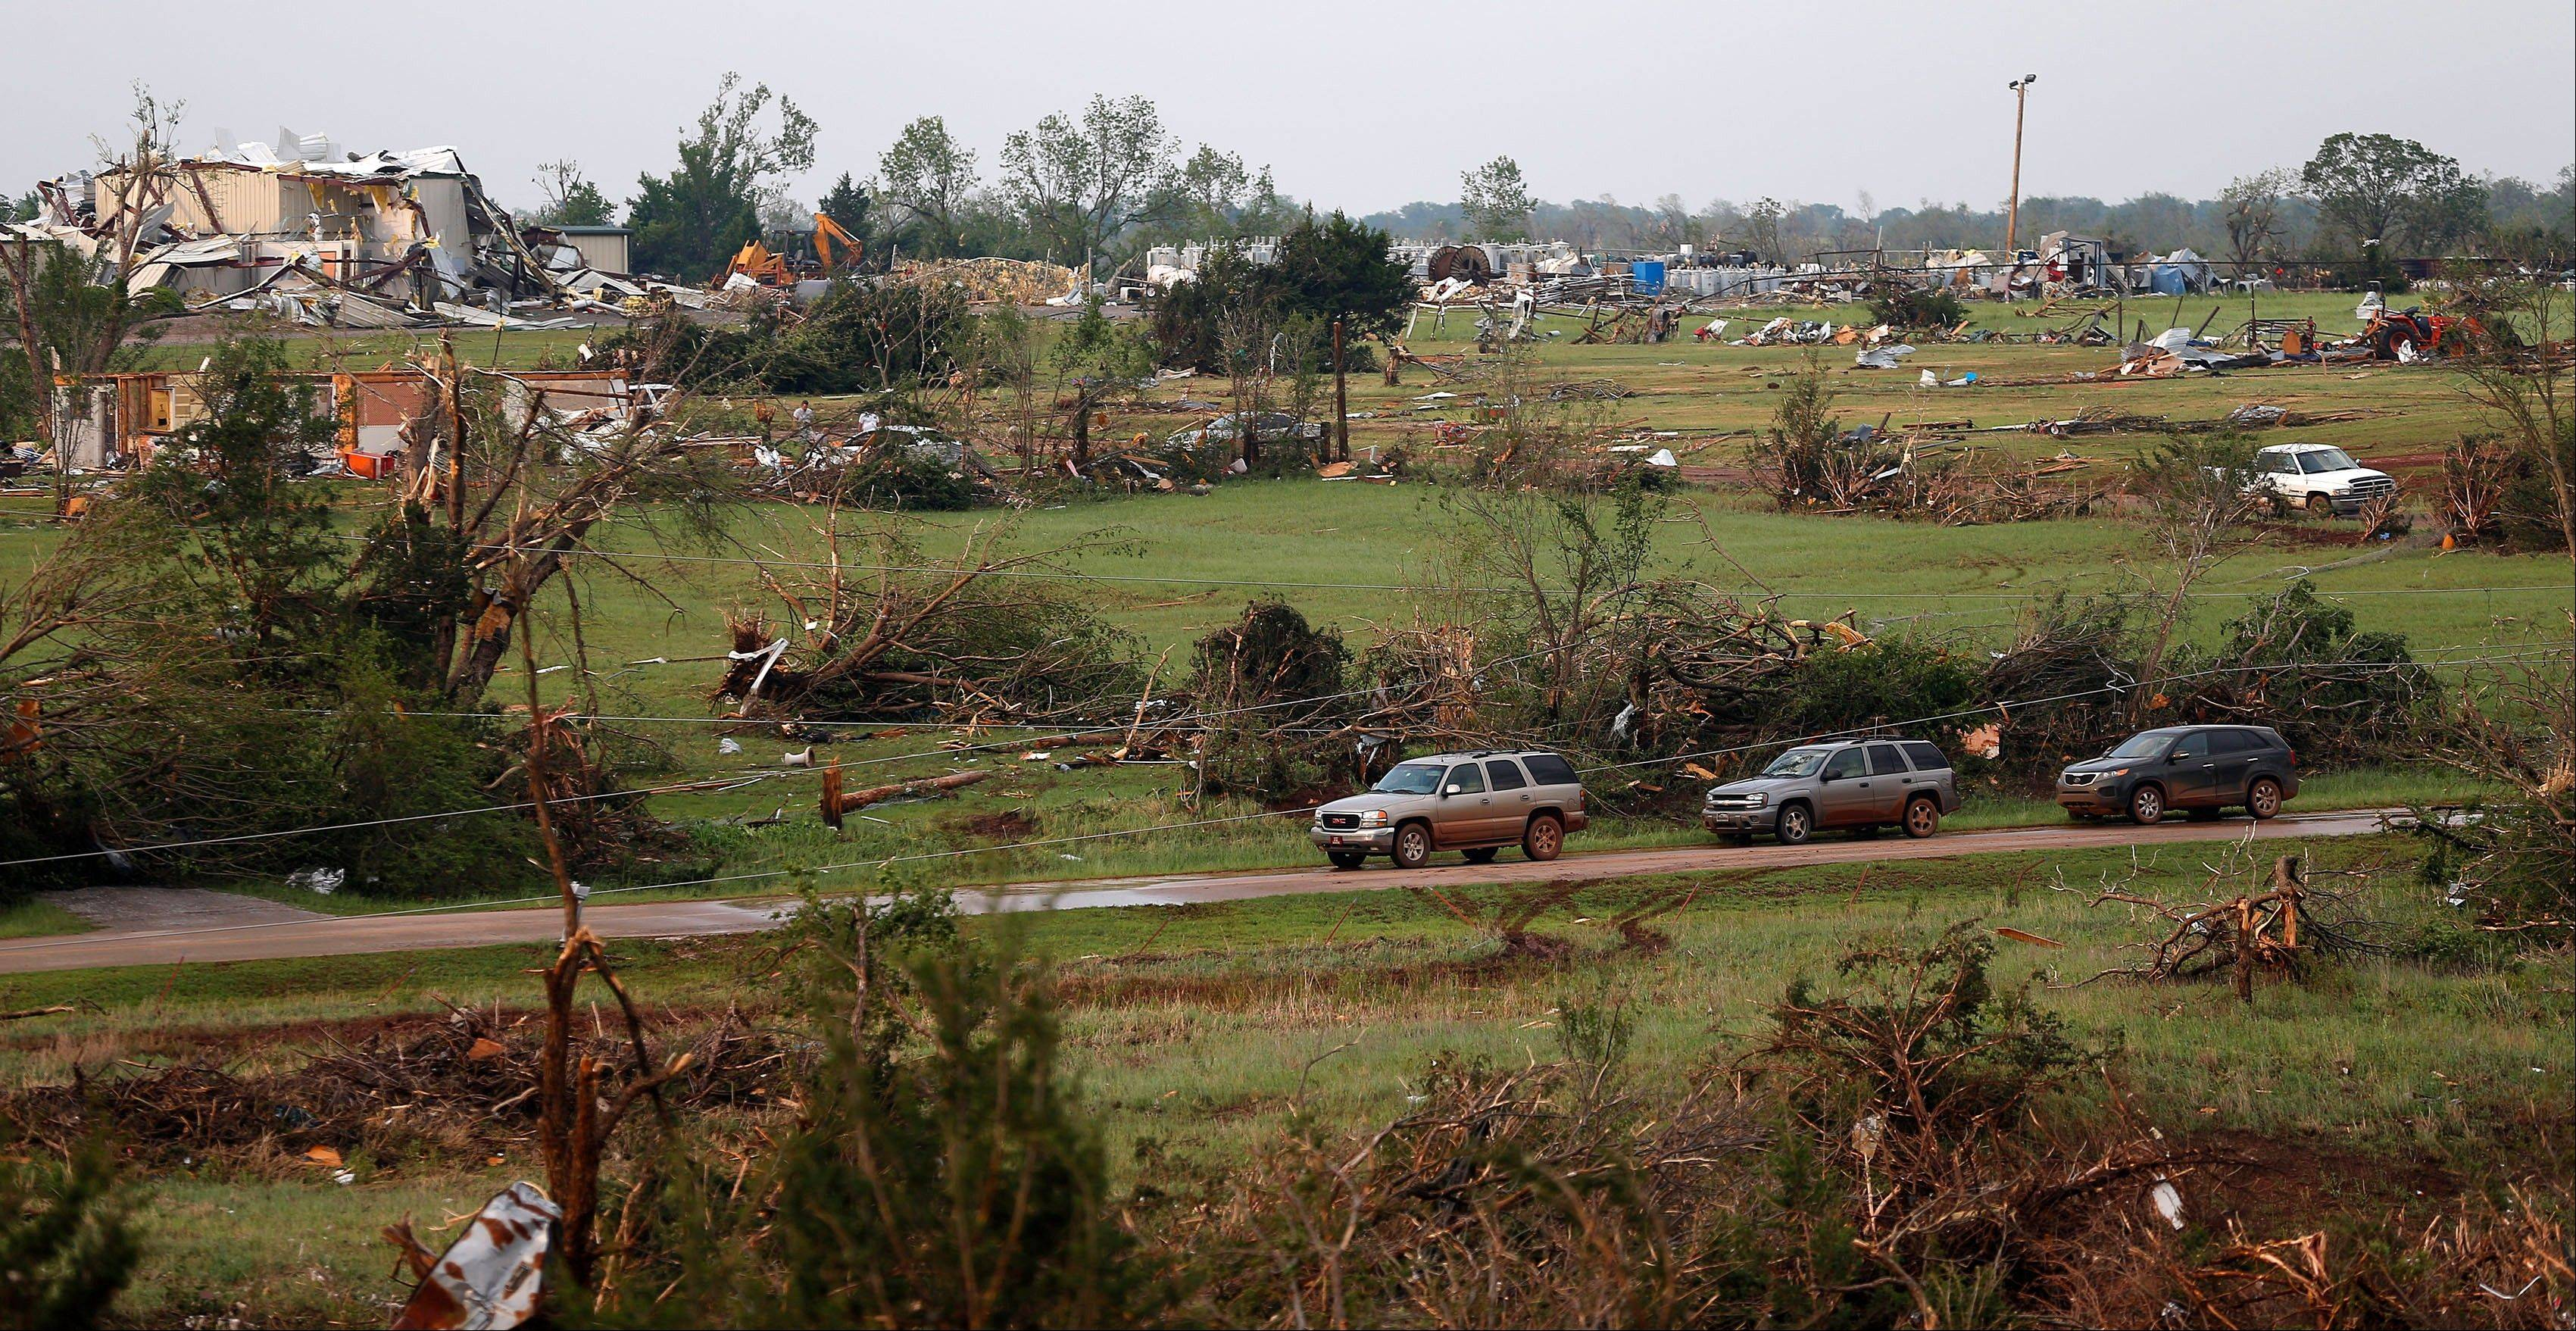 Damaged homes are seen in Carney, Okla., on Sunday, May 19, 2013, after a tornado moved through the area. Damaged homes are seen in Carney, Okla., on Sunday, May 19, 2013, after a tornado moved through the area.